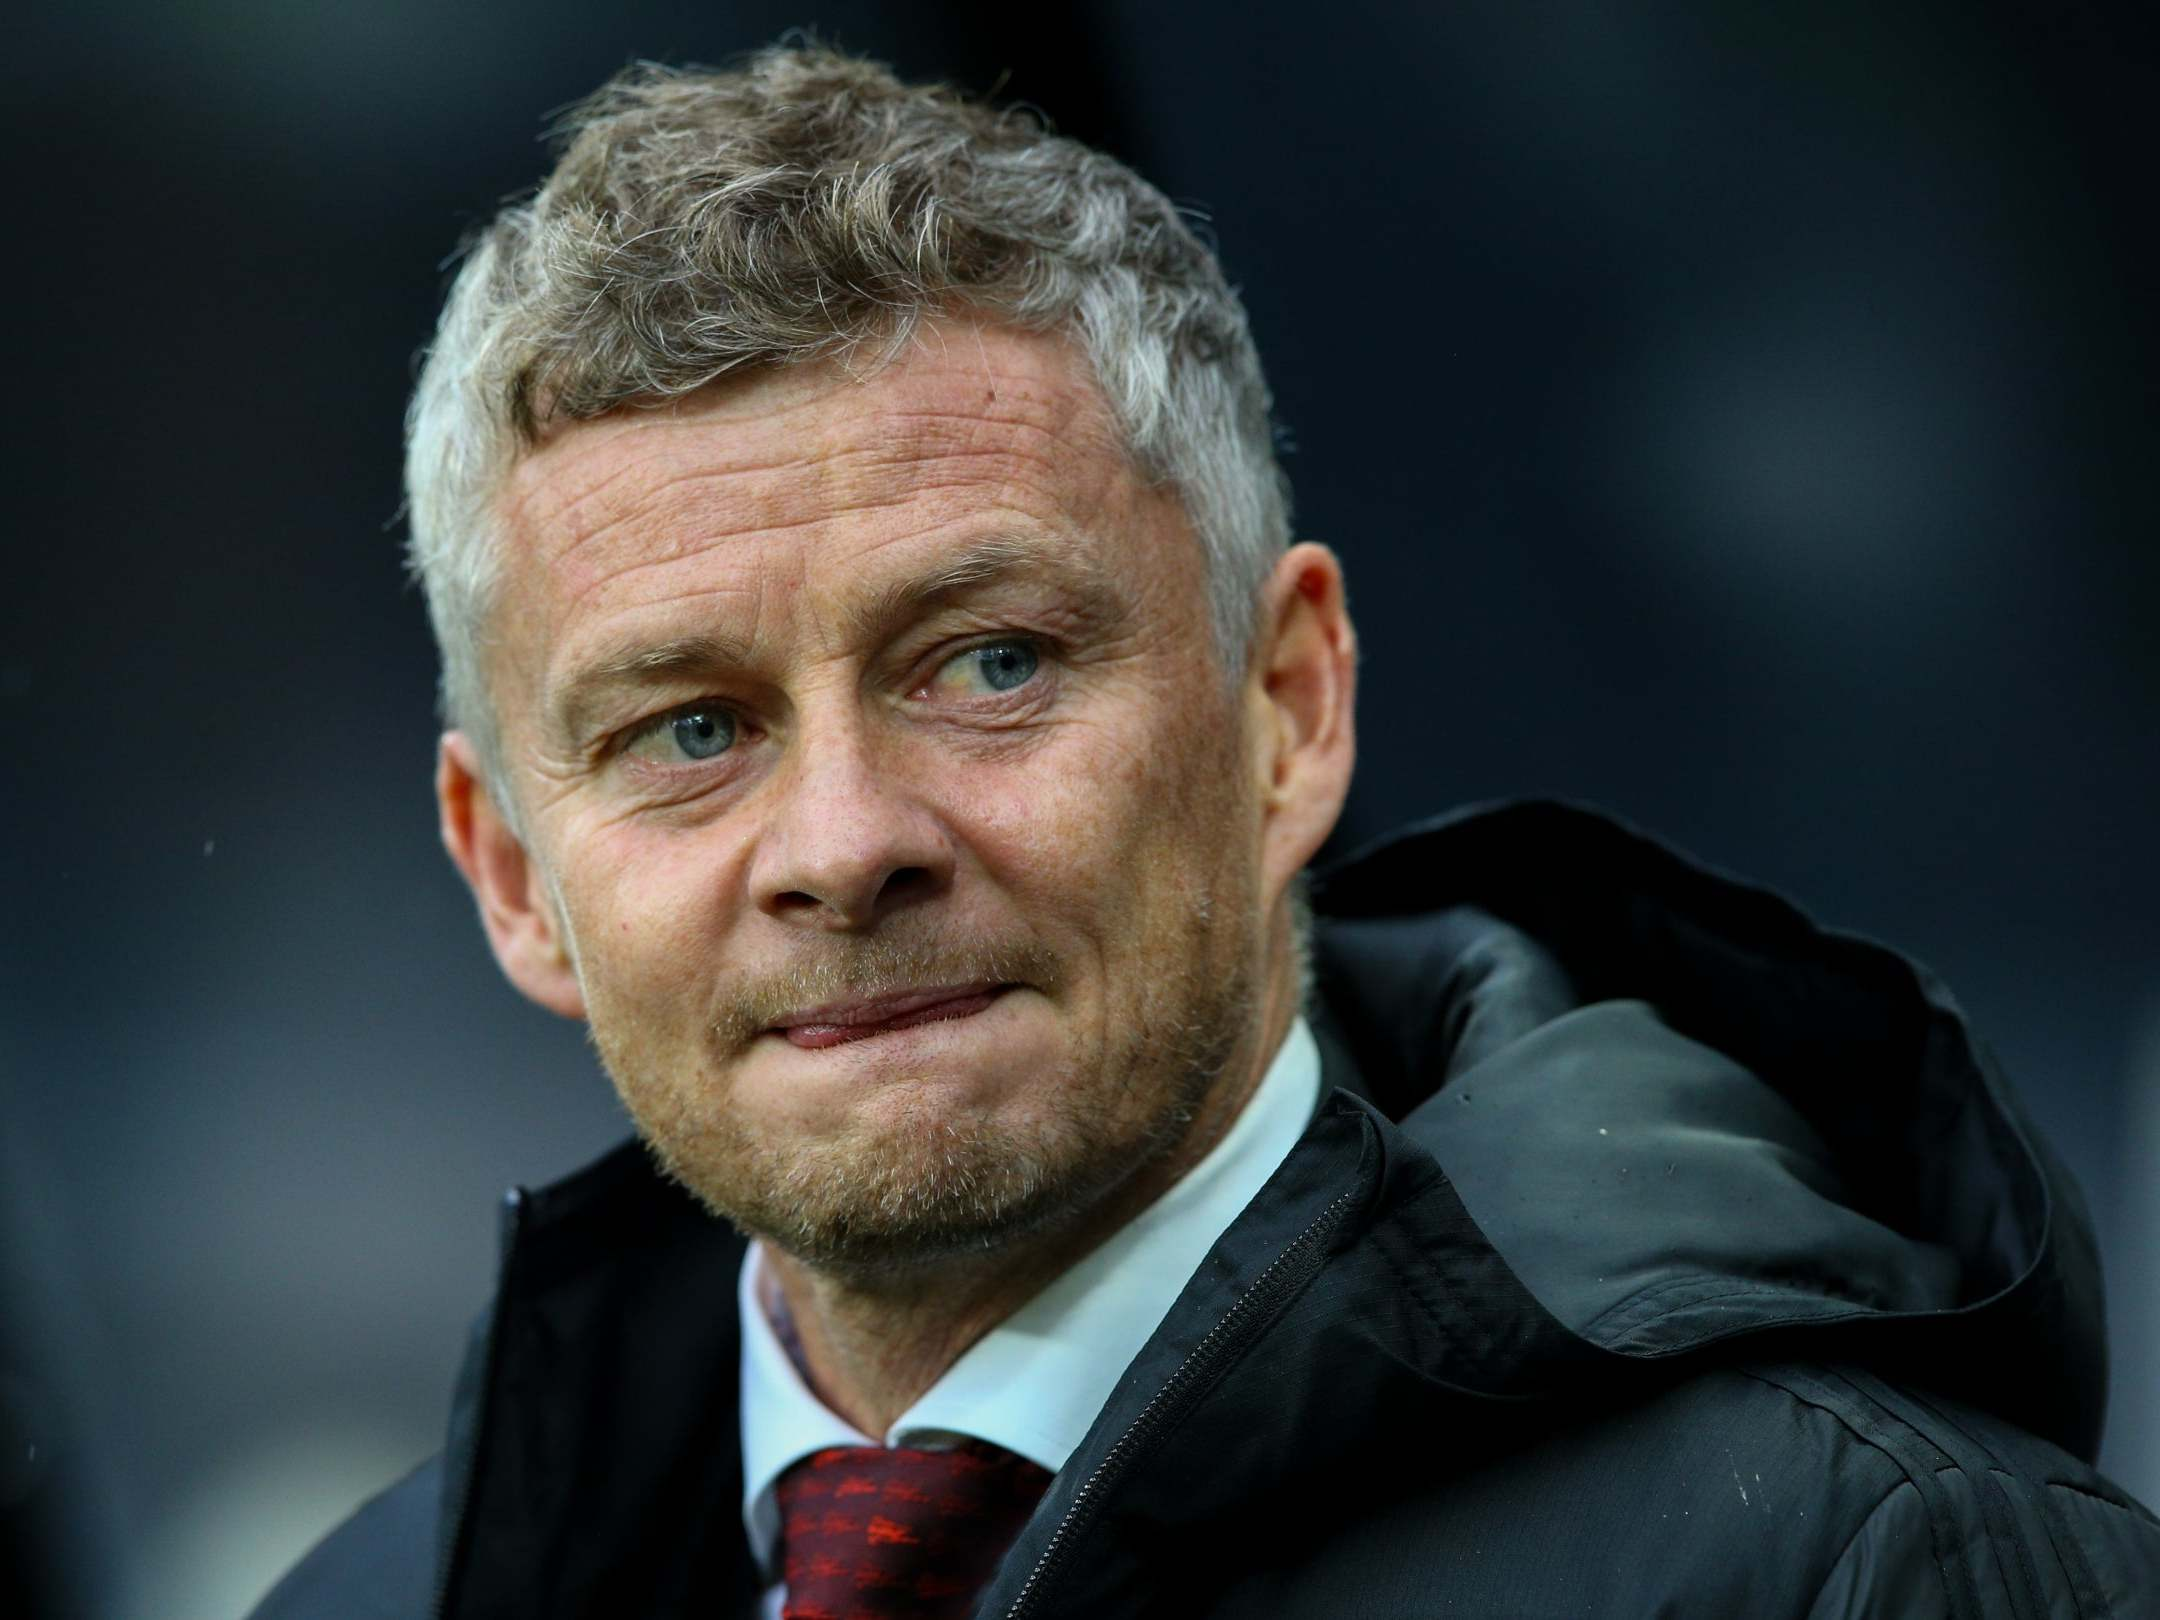 Manchester United transfer news: Ole Gunnar Solskjaer insists he is '100 per cent' sure club has correct structure